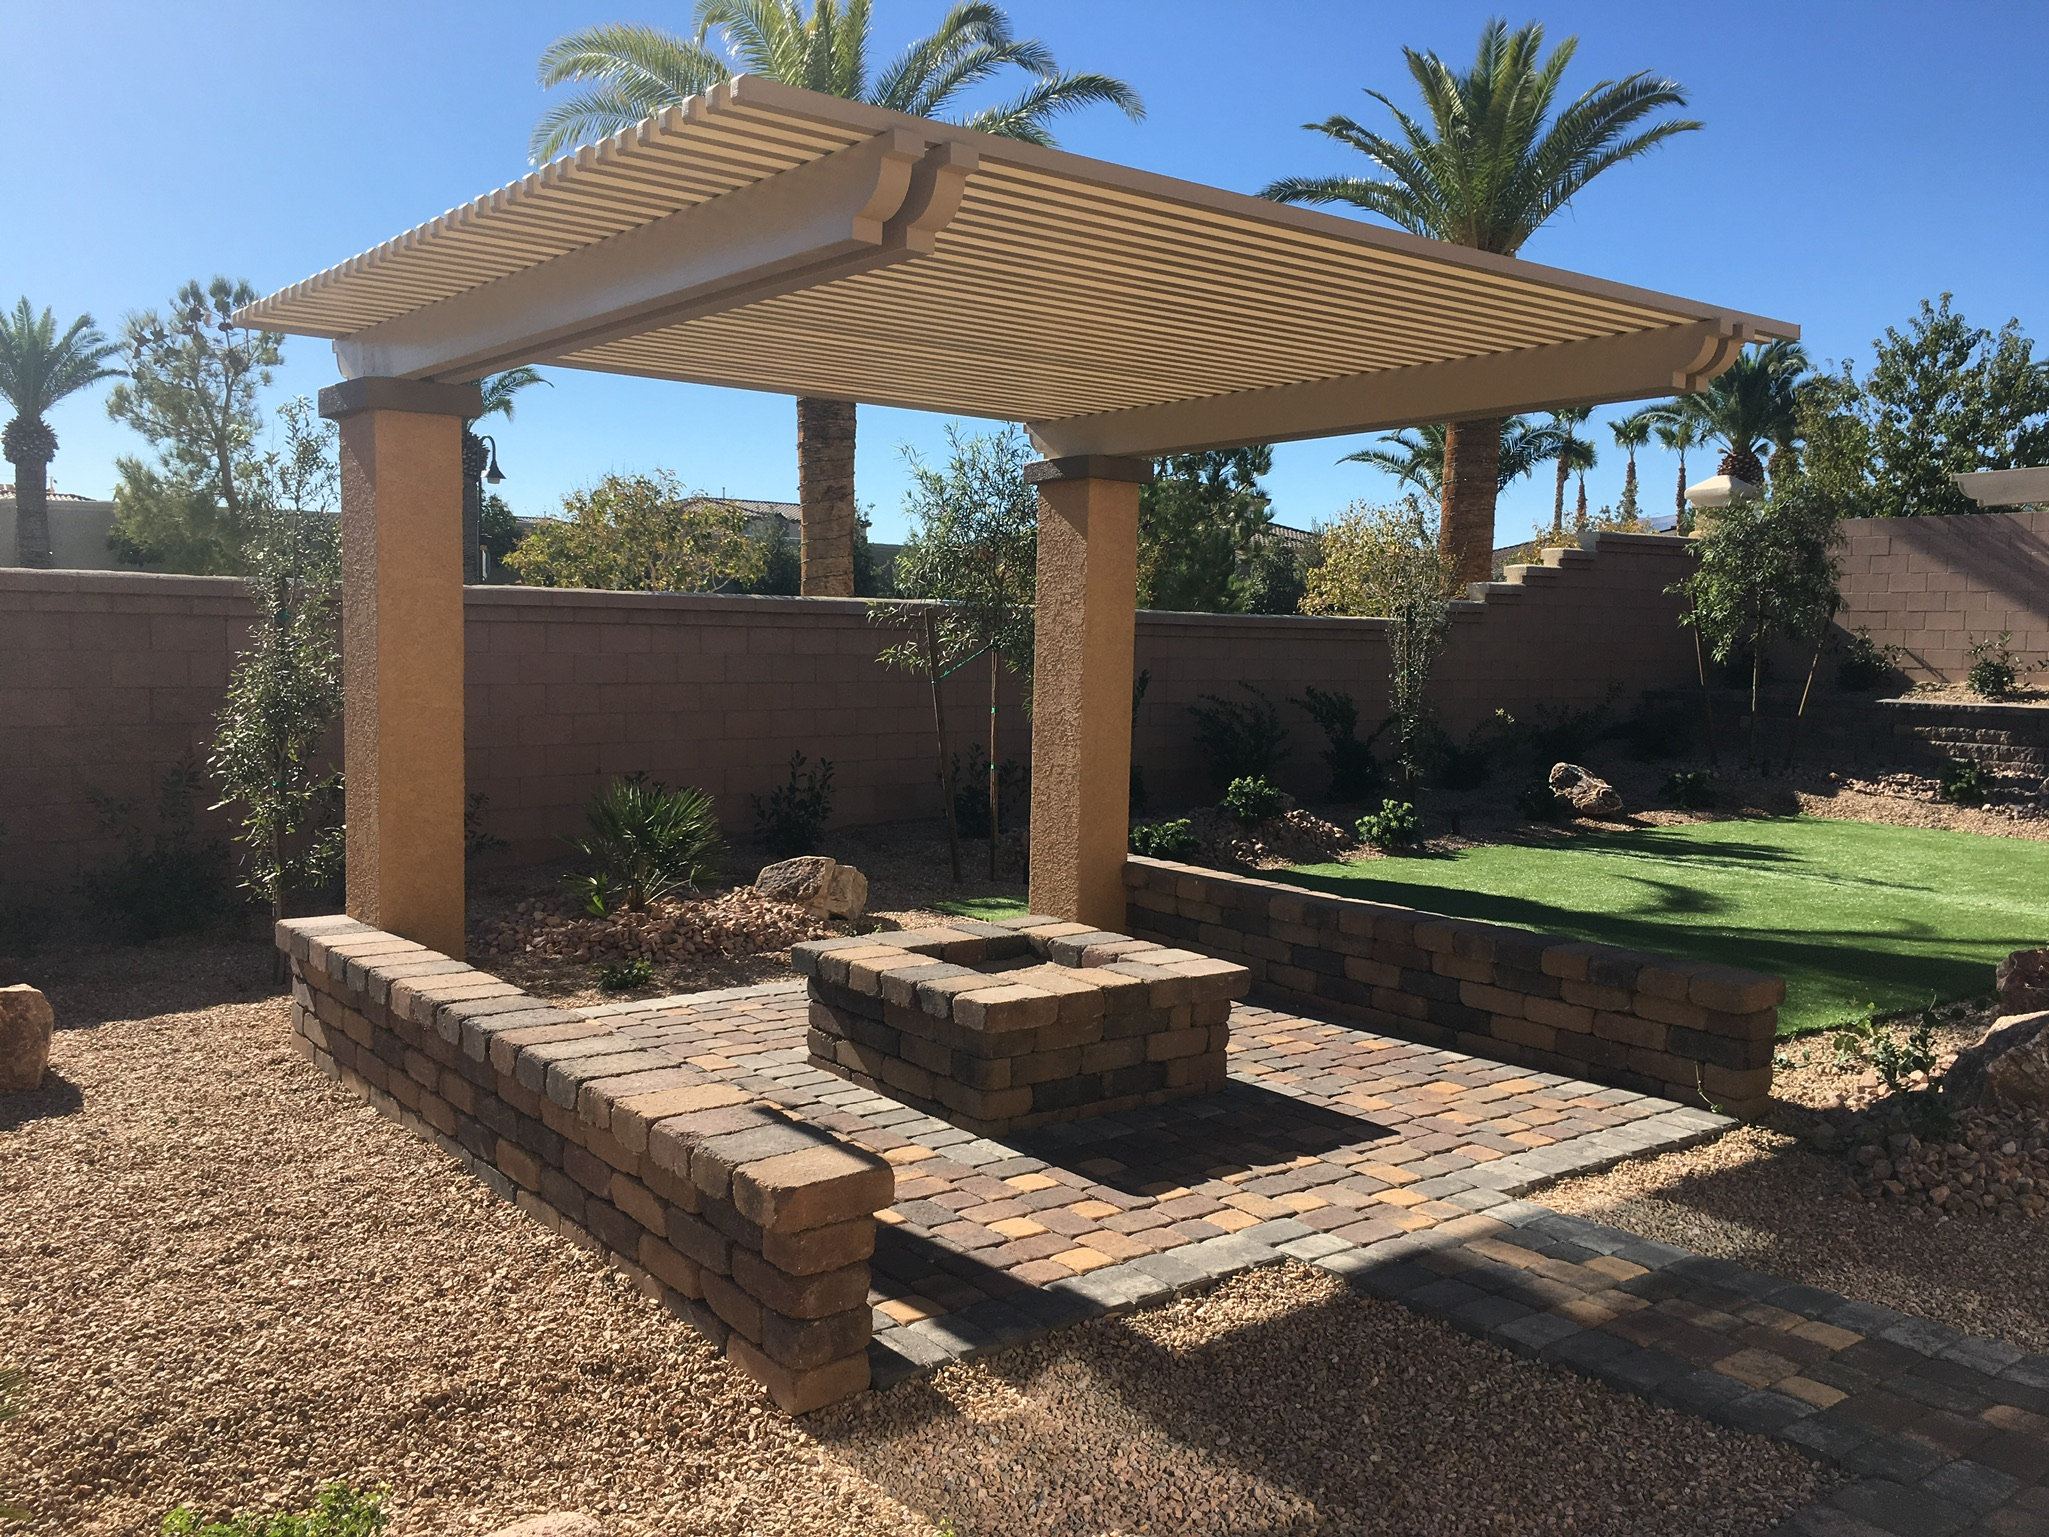 Patio Cover Pergola Awning Installers In Las Vegas Nv intended for sizing 2049 X 1537